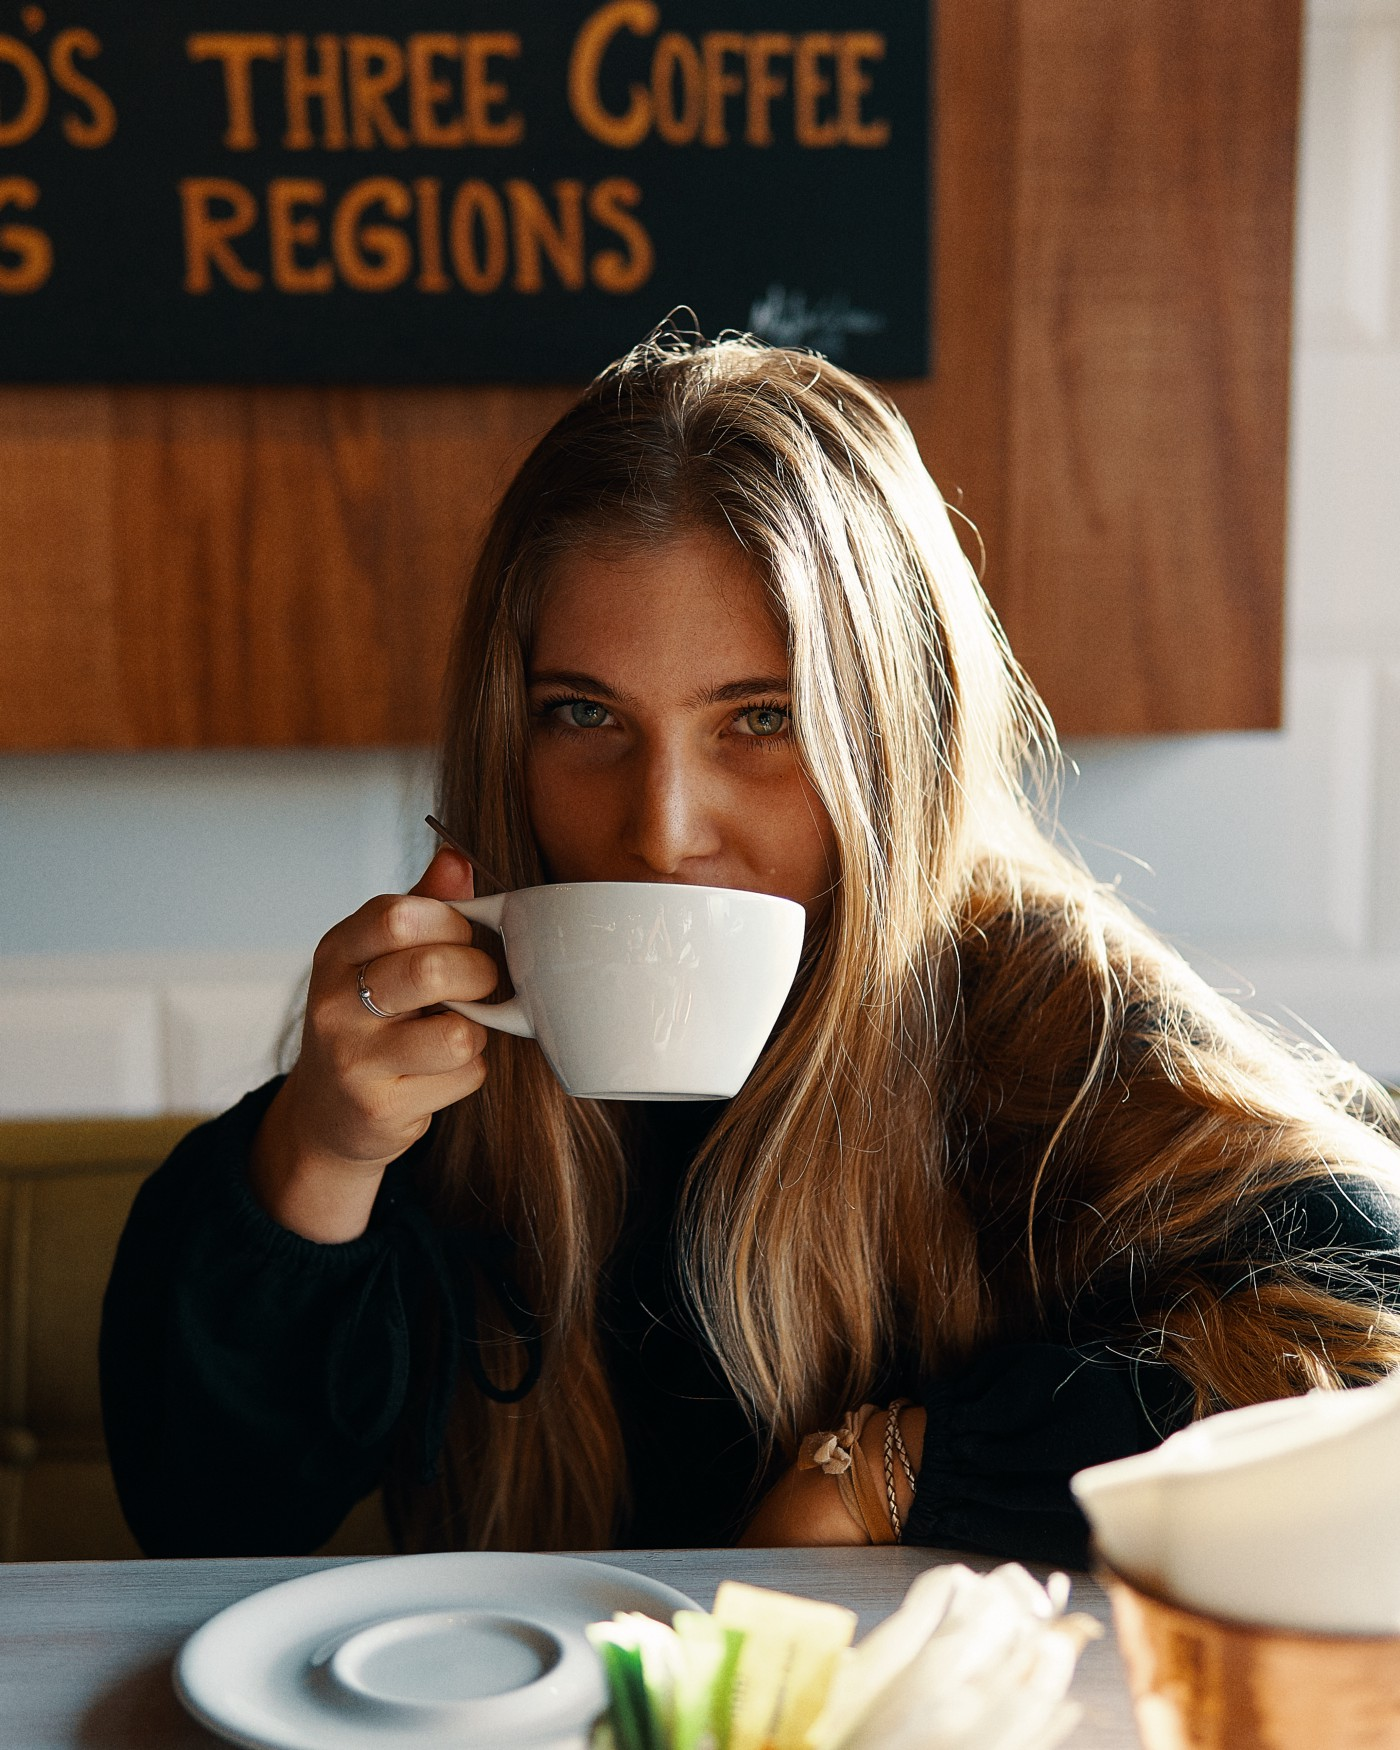 An everyday woman drinks from her mug of coffee